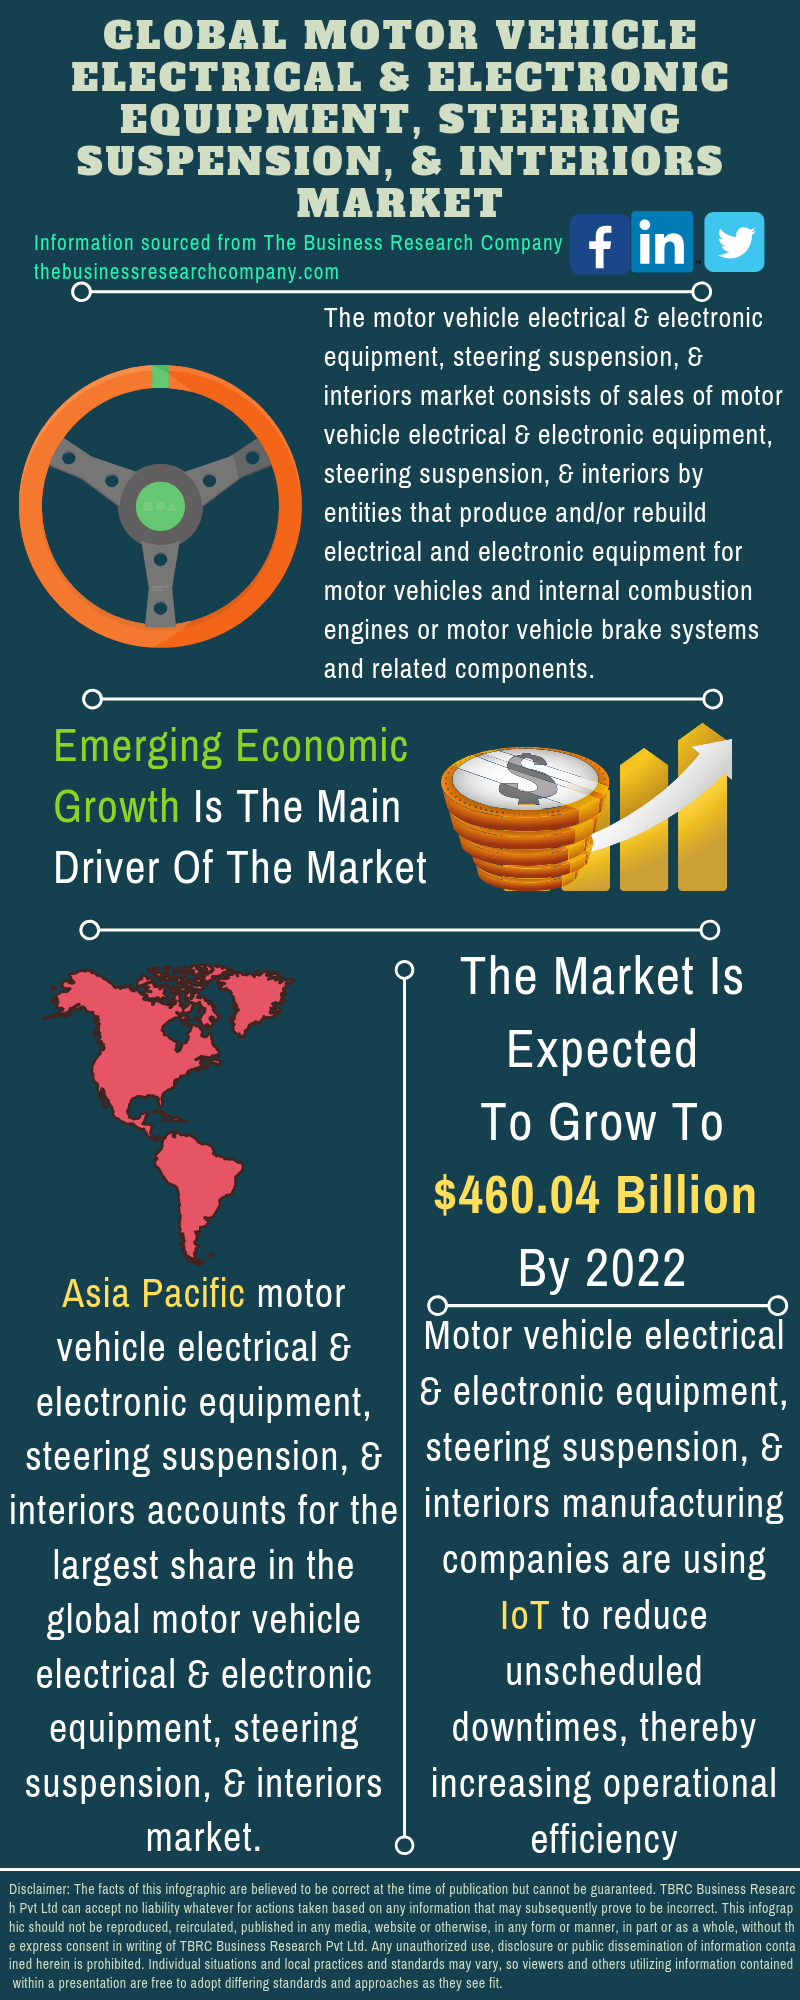 Motor Vehicle Electrical & Electronic Equipment, Steering Suspension, & Interiors Market